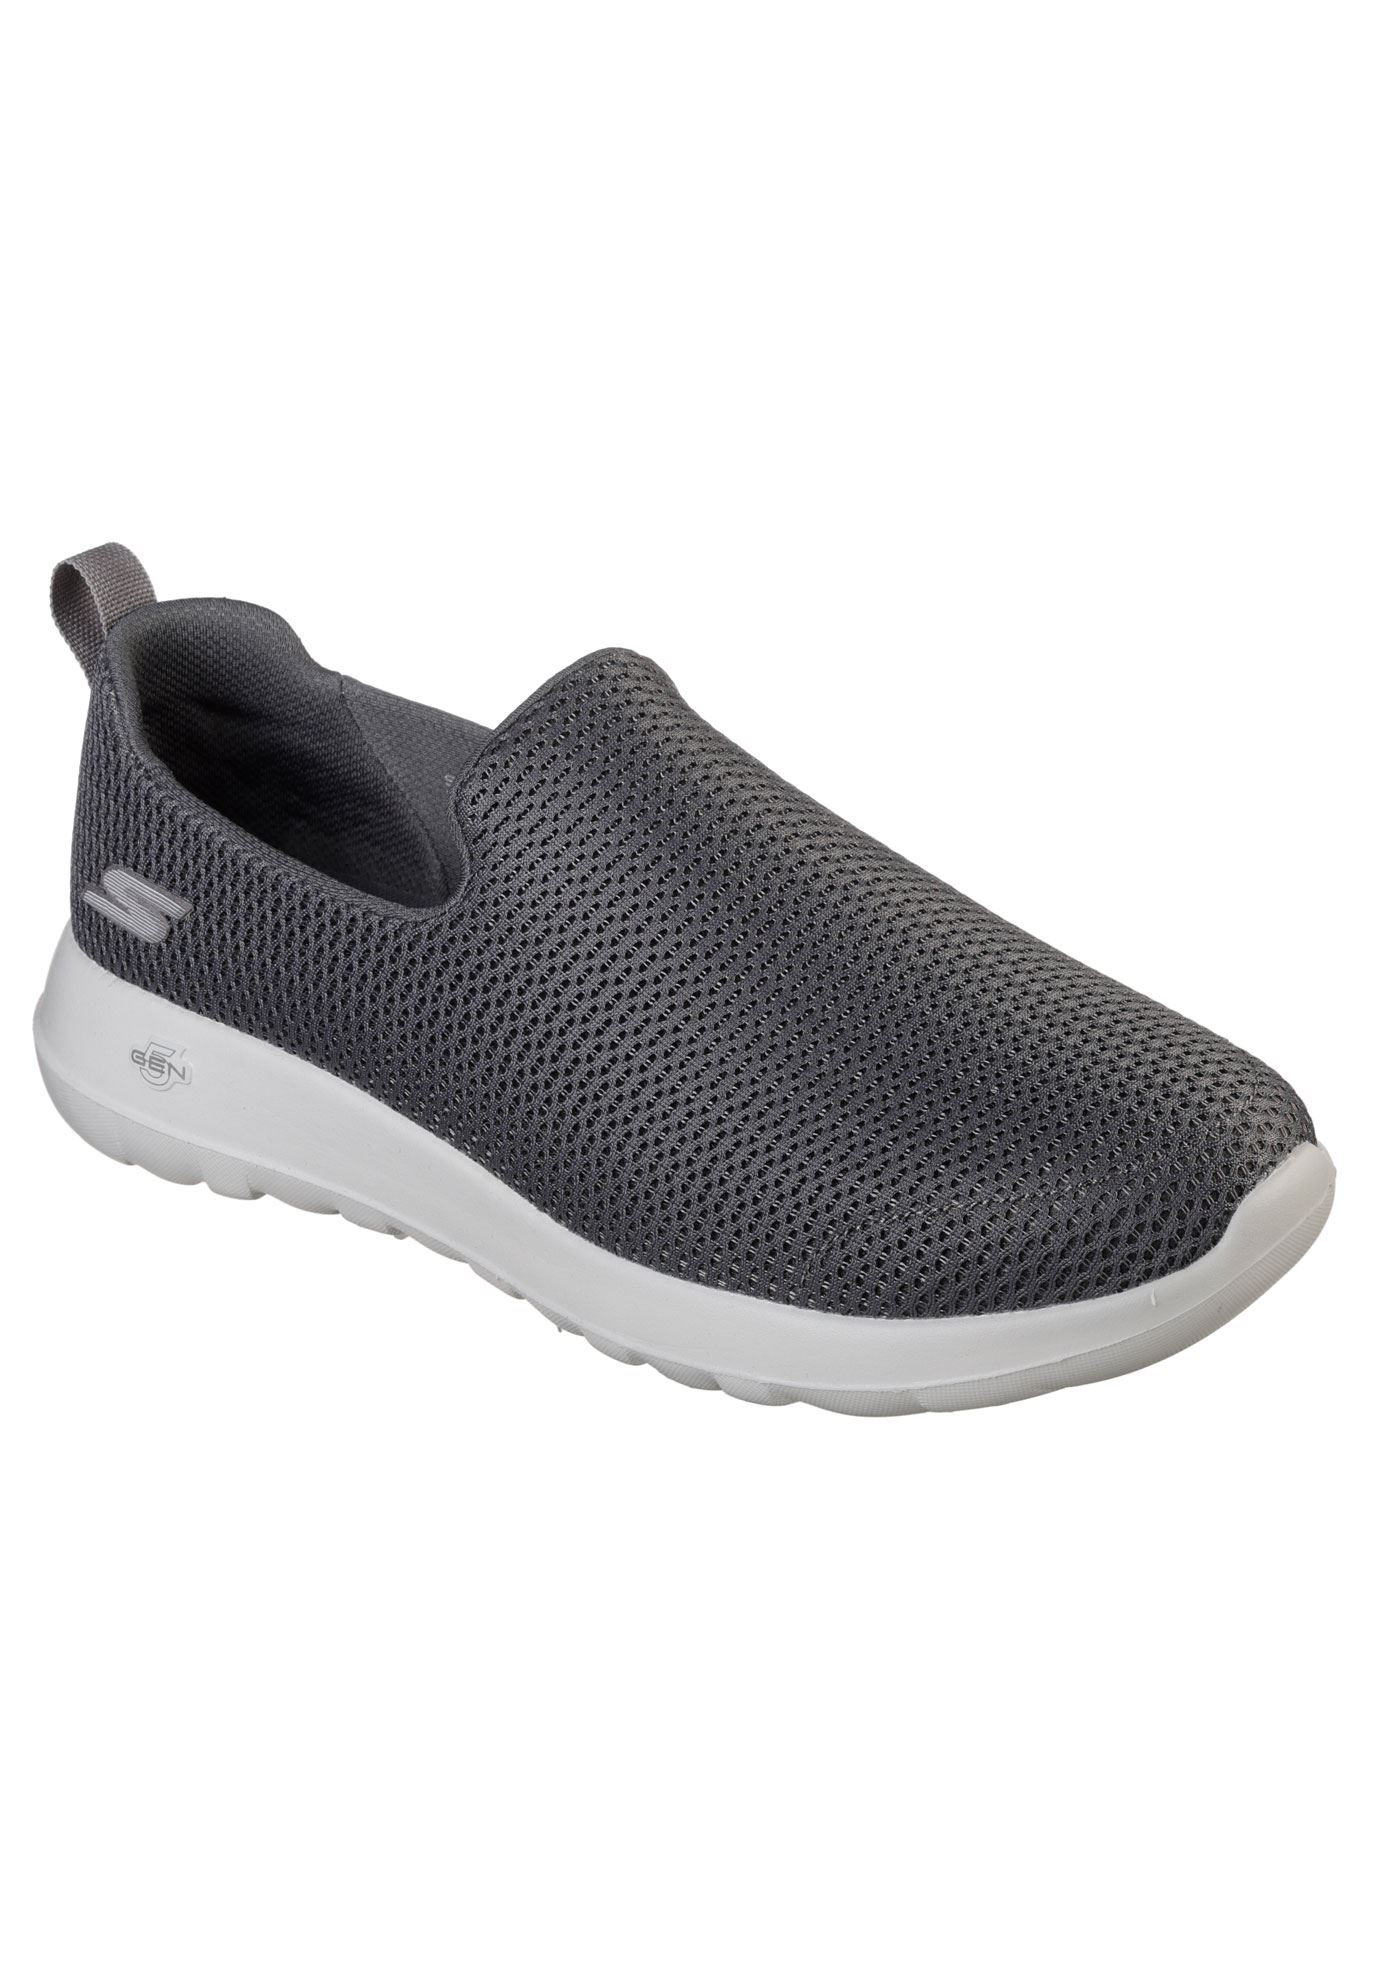 GOWalk Max Athletic Air Mesh Slip-On by Skechers®,